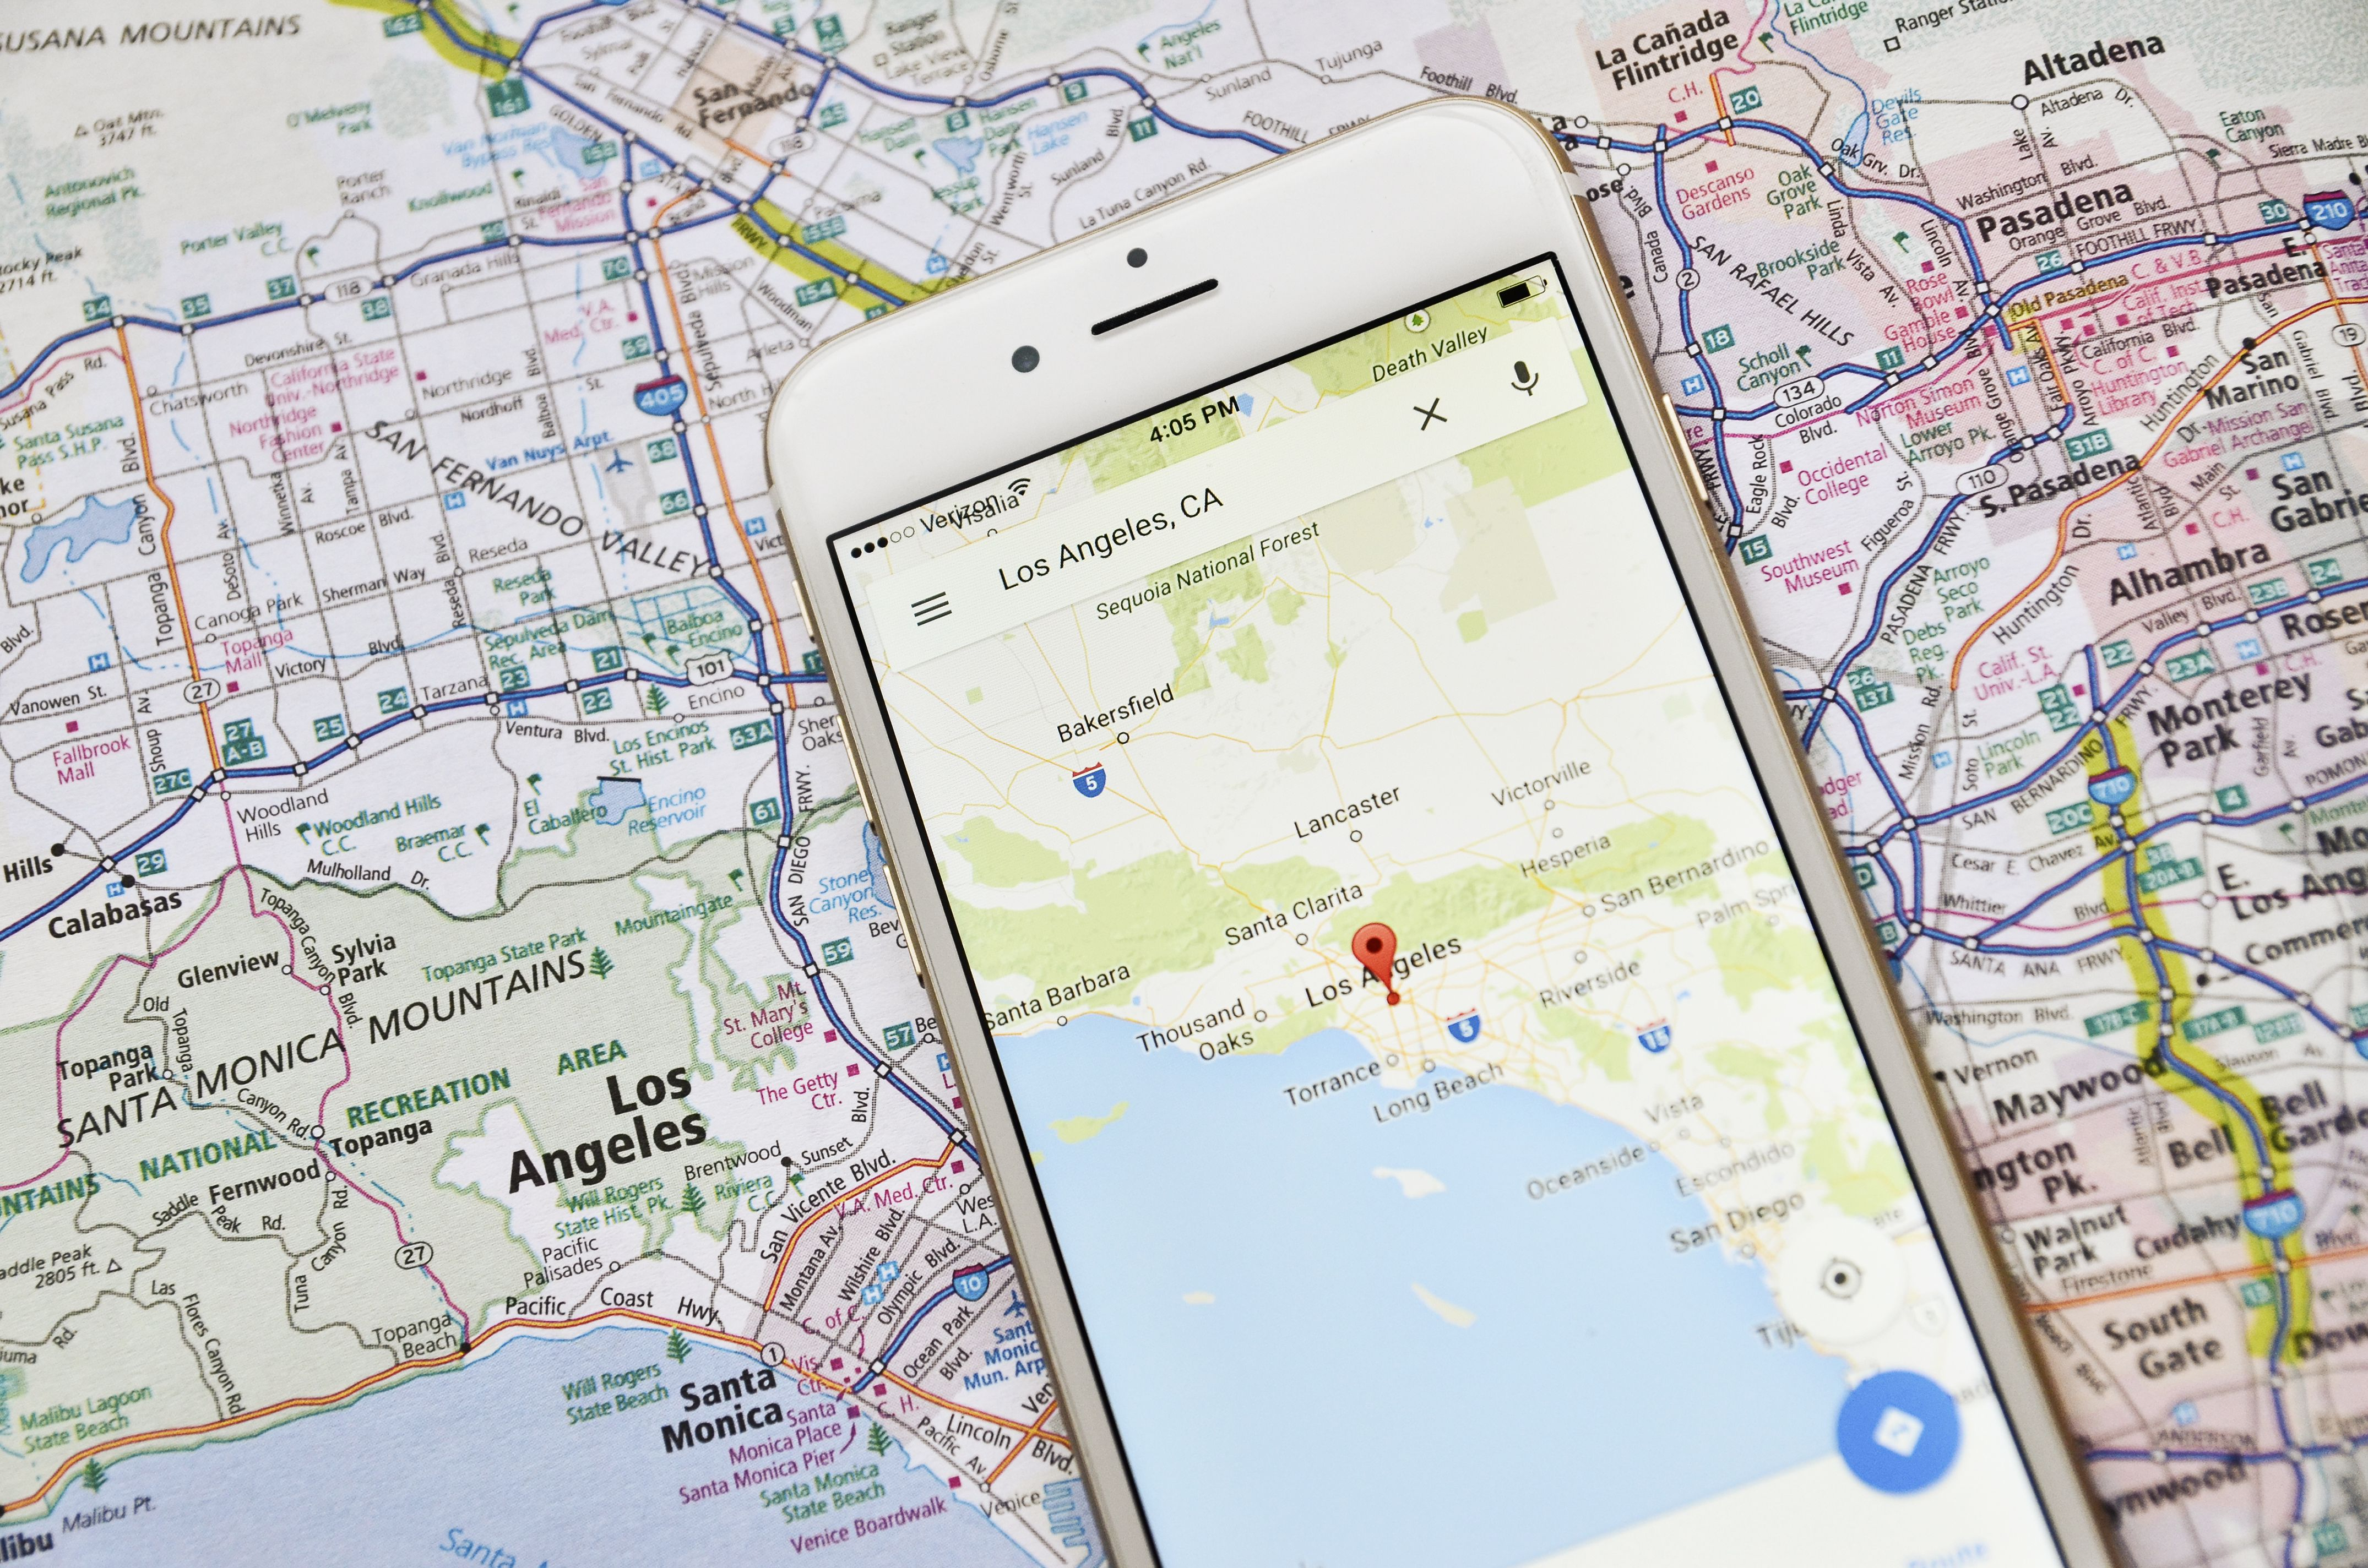 MapofLA-5b368efec9e77c001acc4d29 Gogal Maps on google moon, google voice, google map maker, google search, google earth, web mapping, satellite map images with missing or unclear data, google sky, google latitude, yahoo! maps, google mars, bing maps, bing maps platform, nokia maps, route planning software,